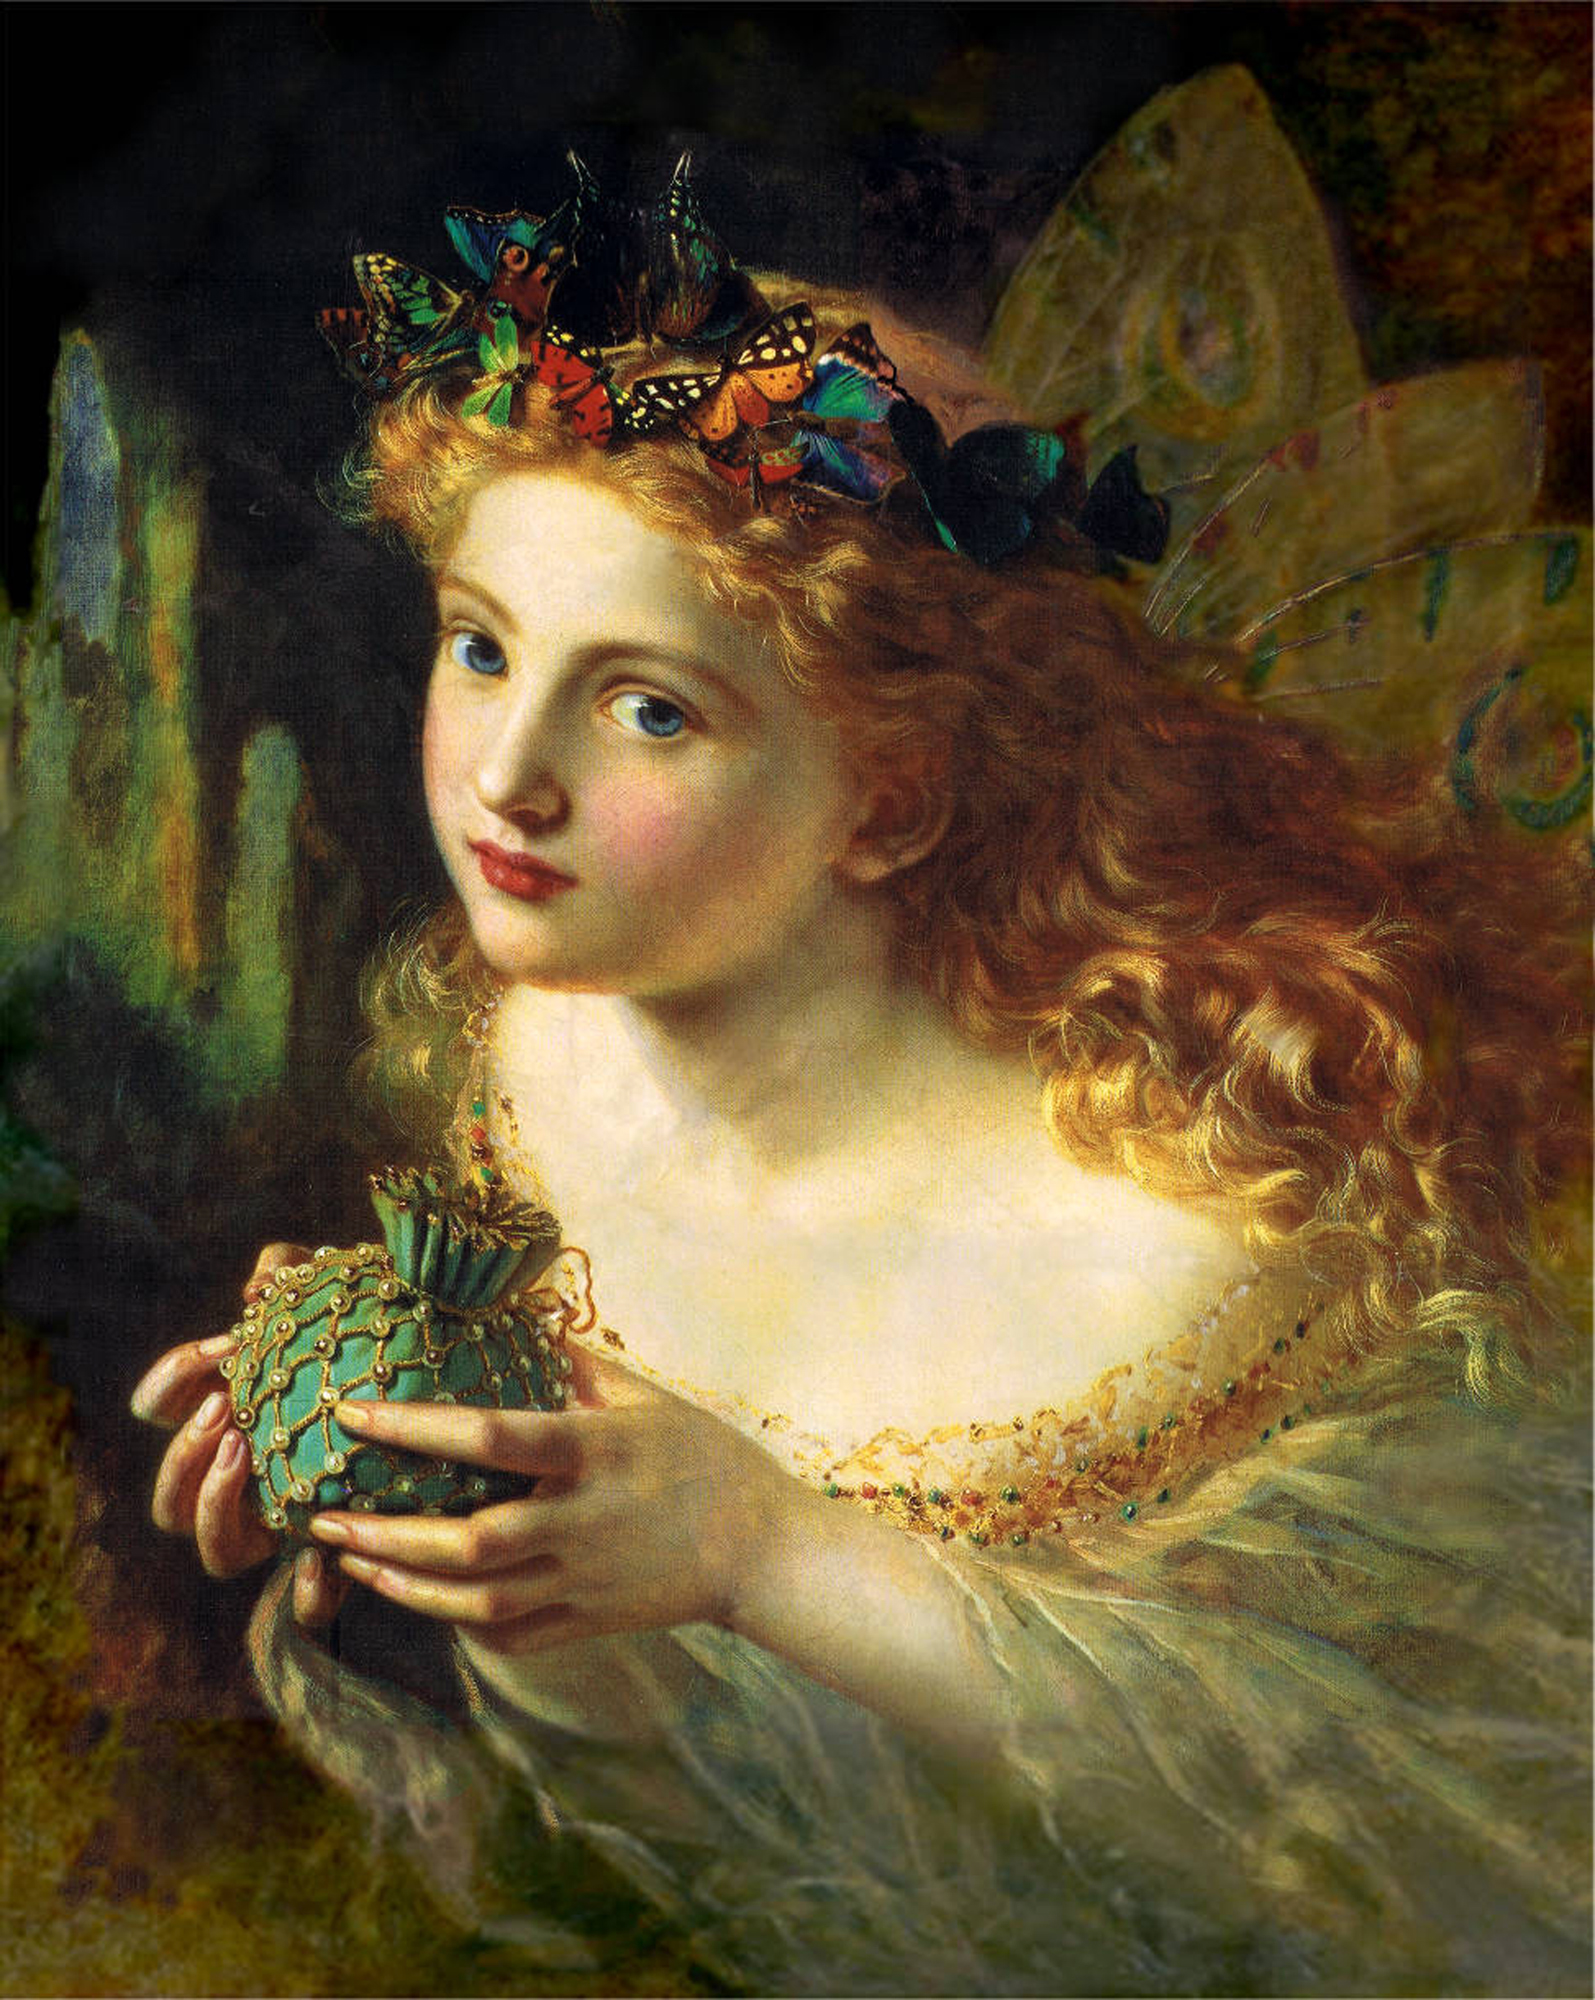 Sophie Anderson. Take the fair face of Woman